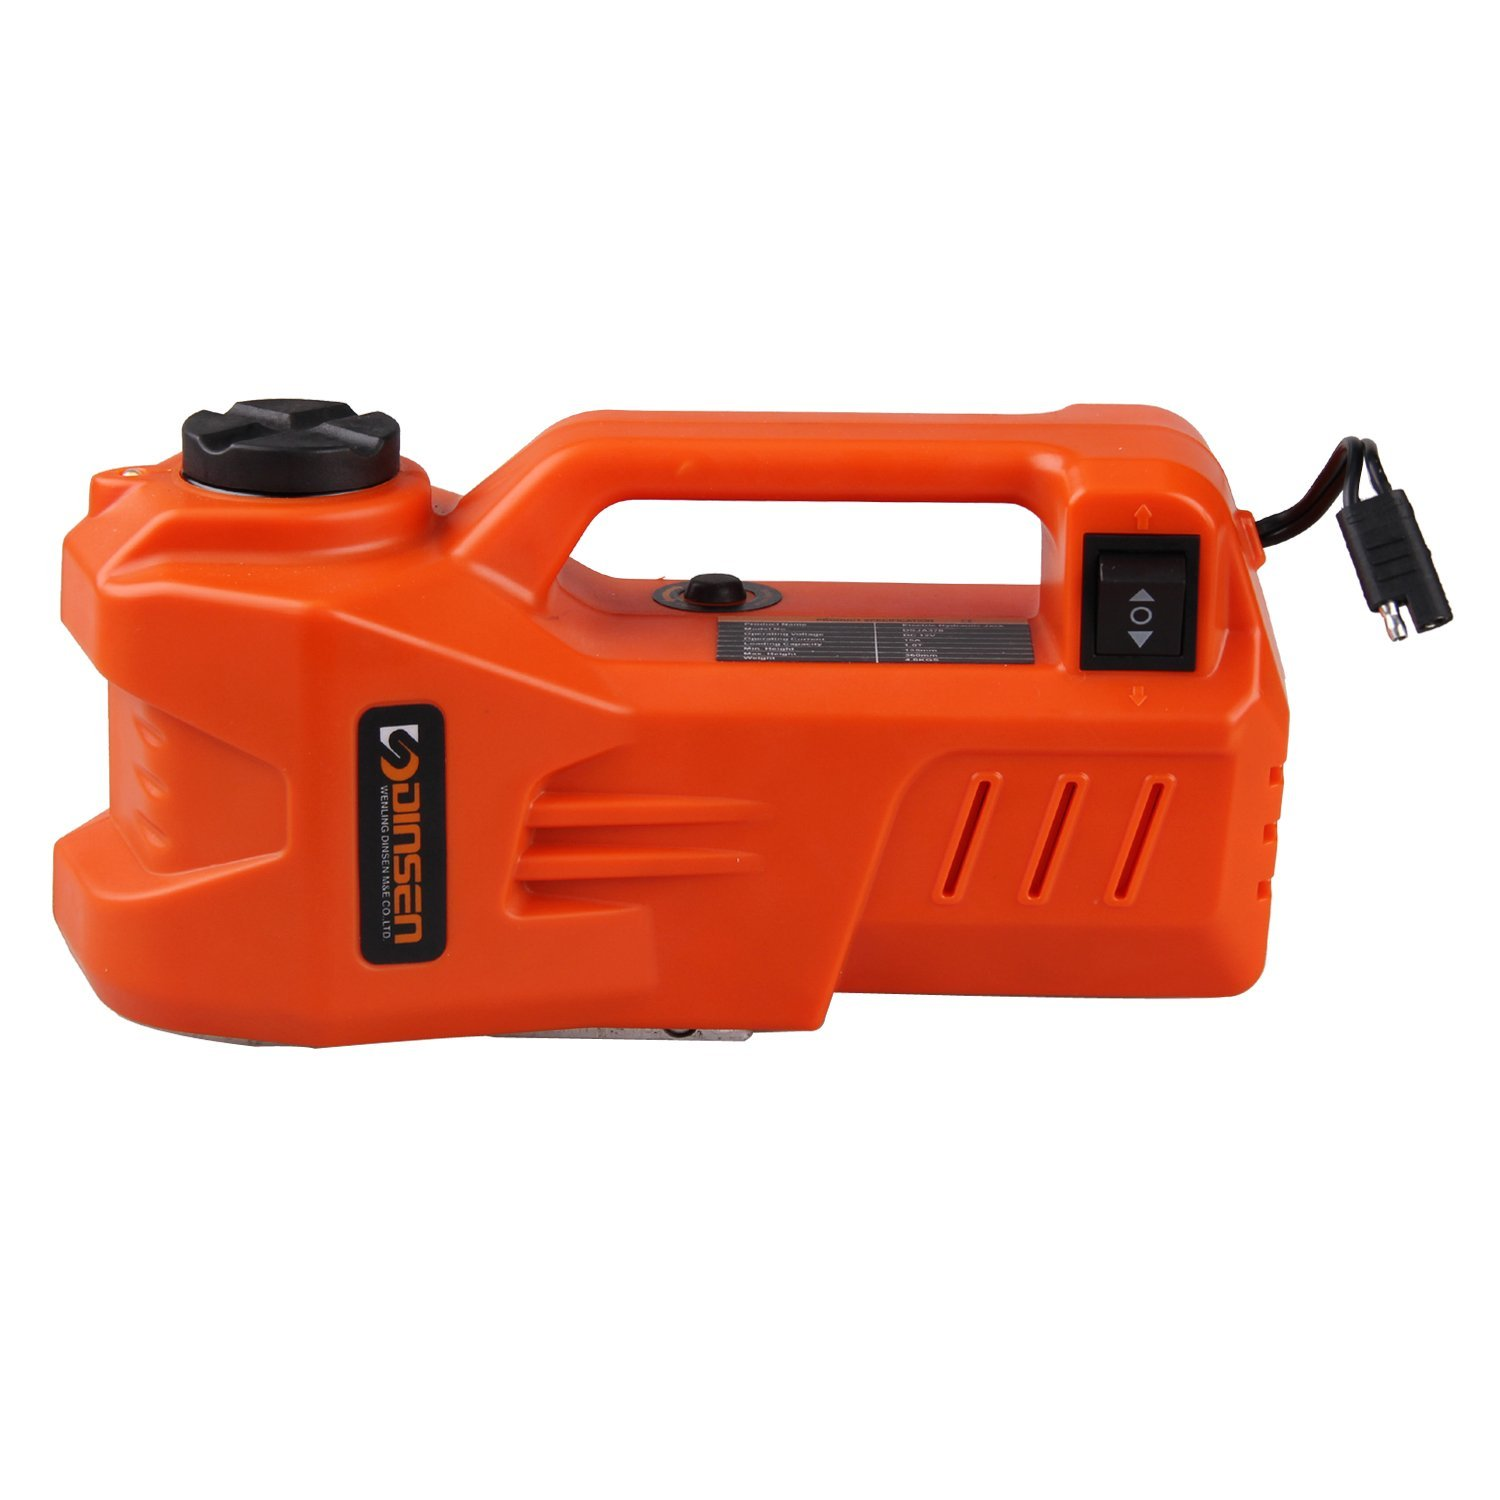 12V DC 1 Ton Electric Hydraulic Car Floor Jack with LED light (5.3-13.9 inch)